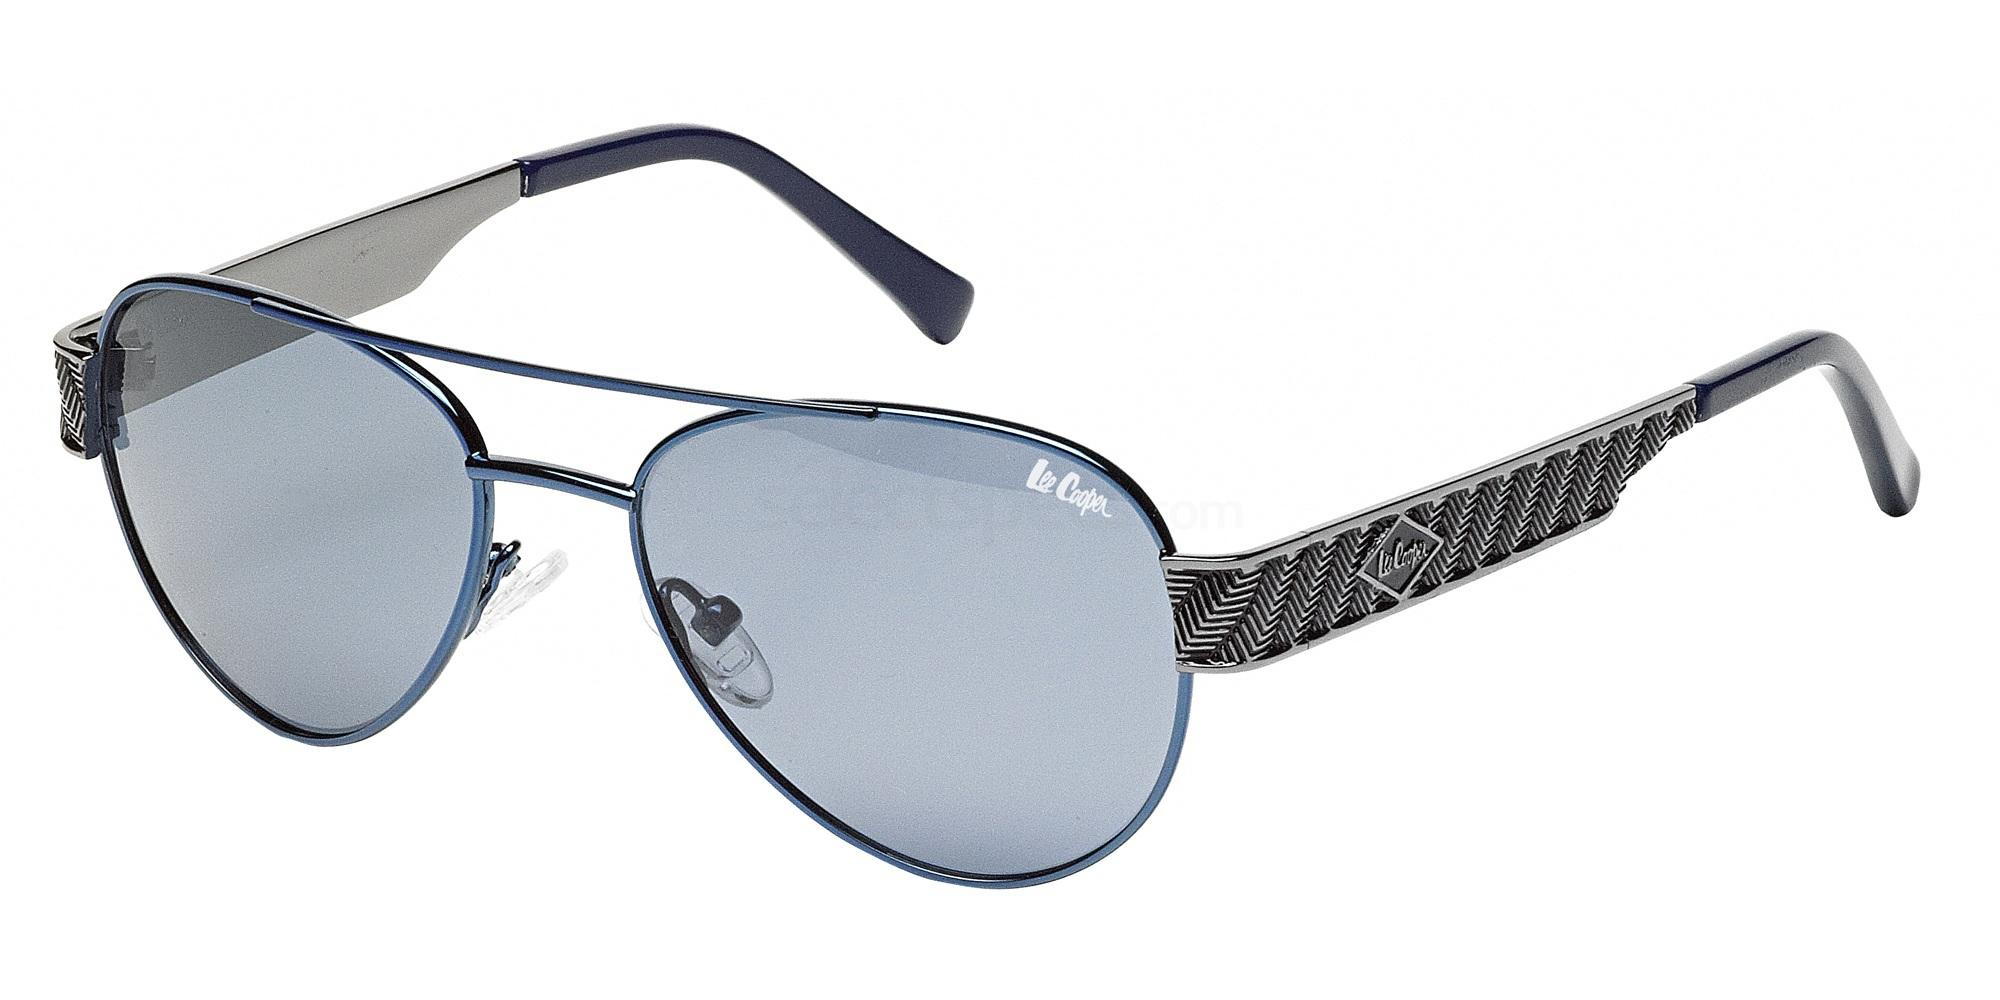 C1 SGLCK104 Sunglasses, Lee Cooper KIDS